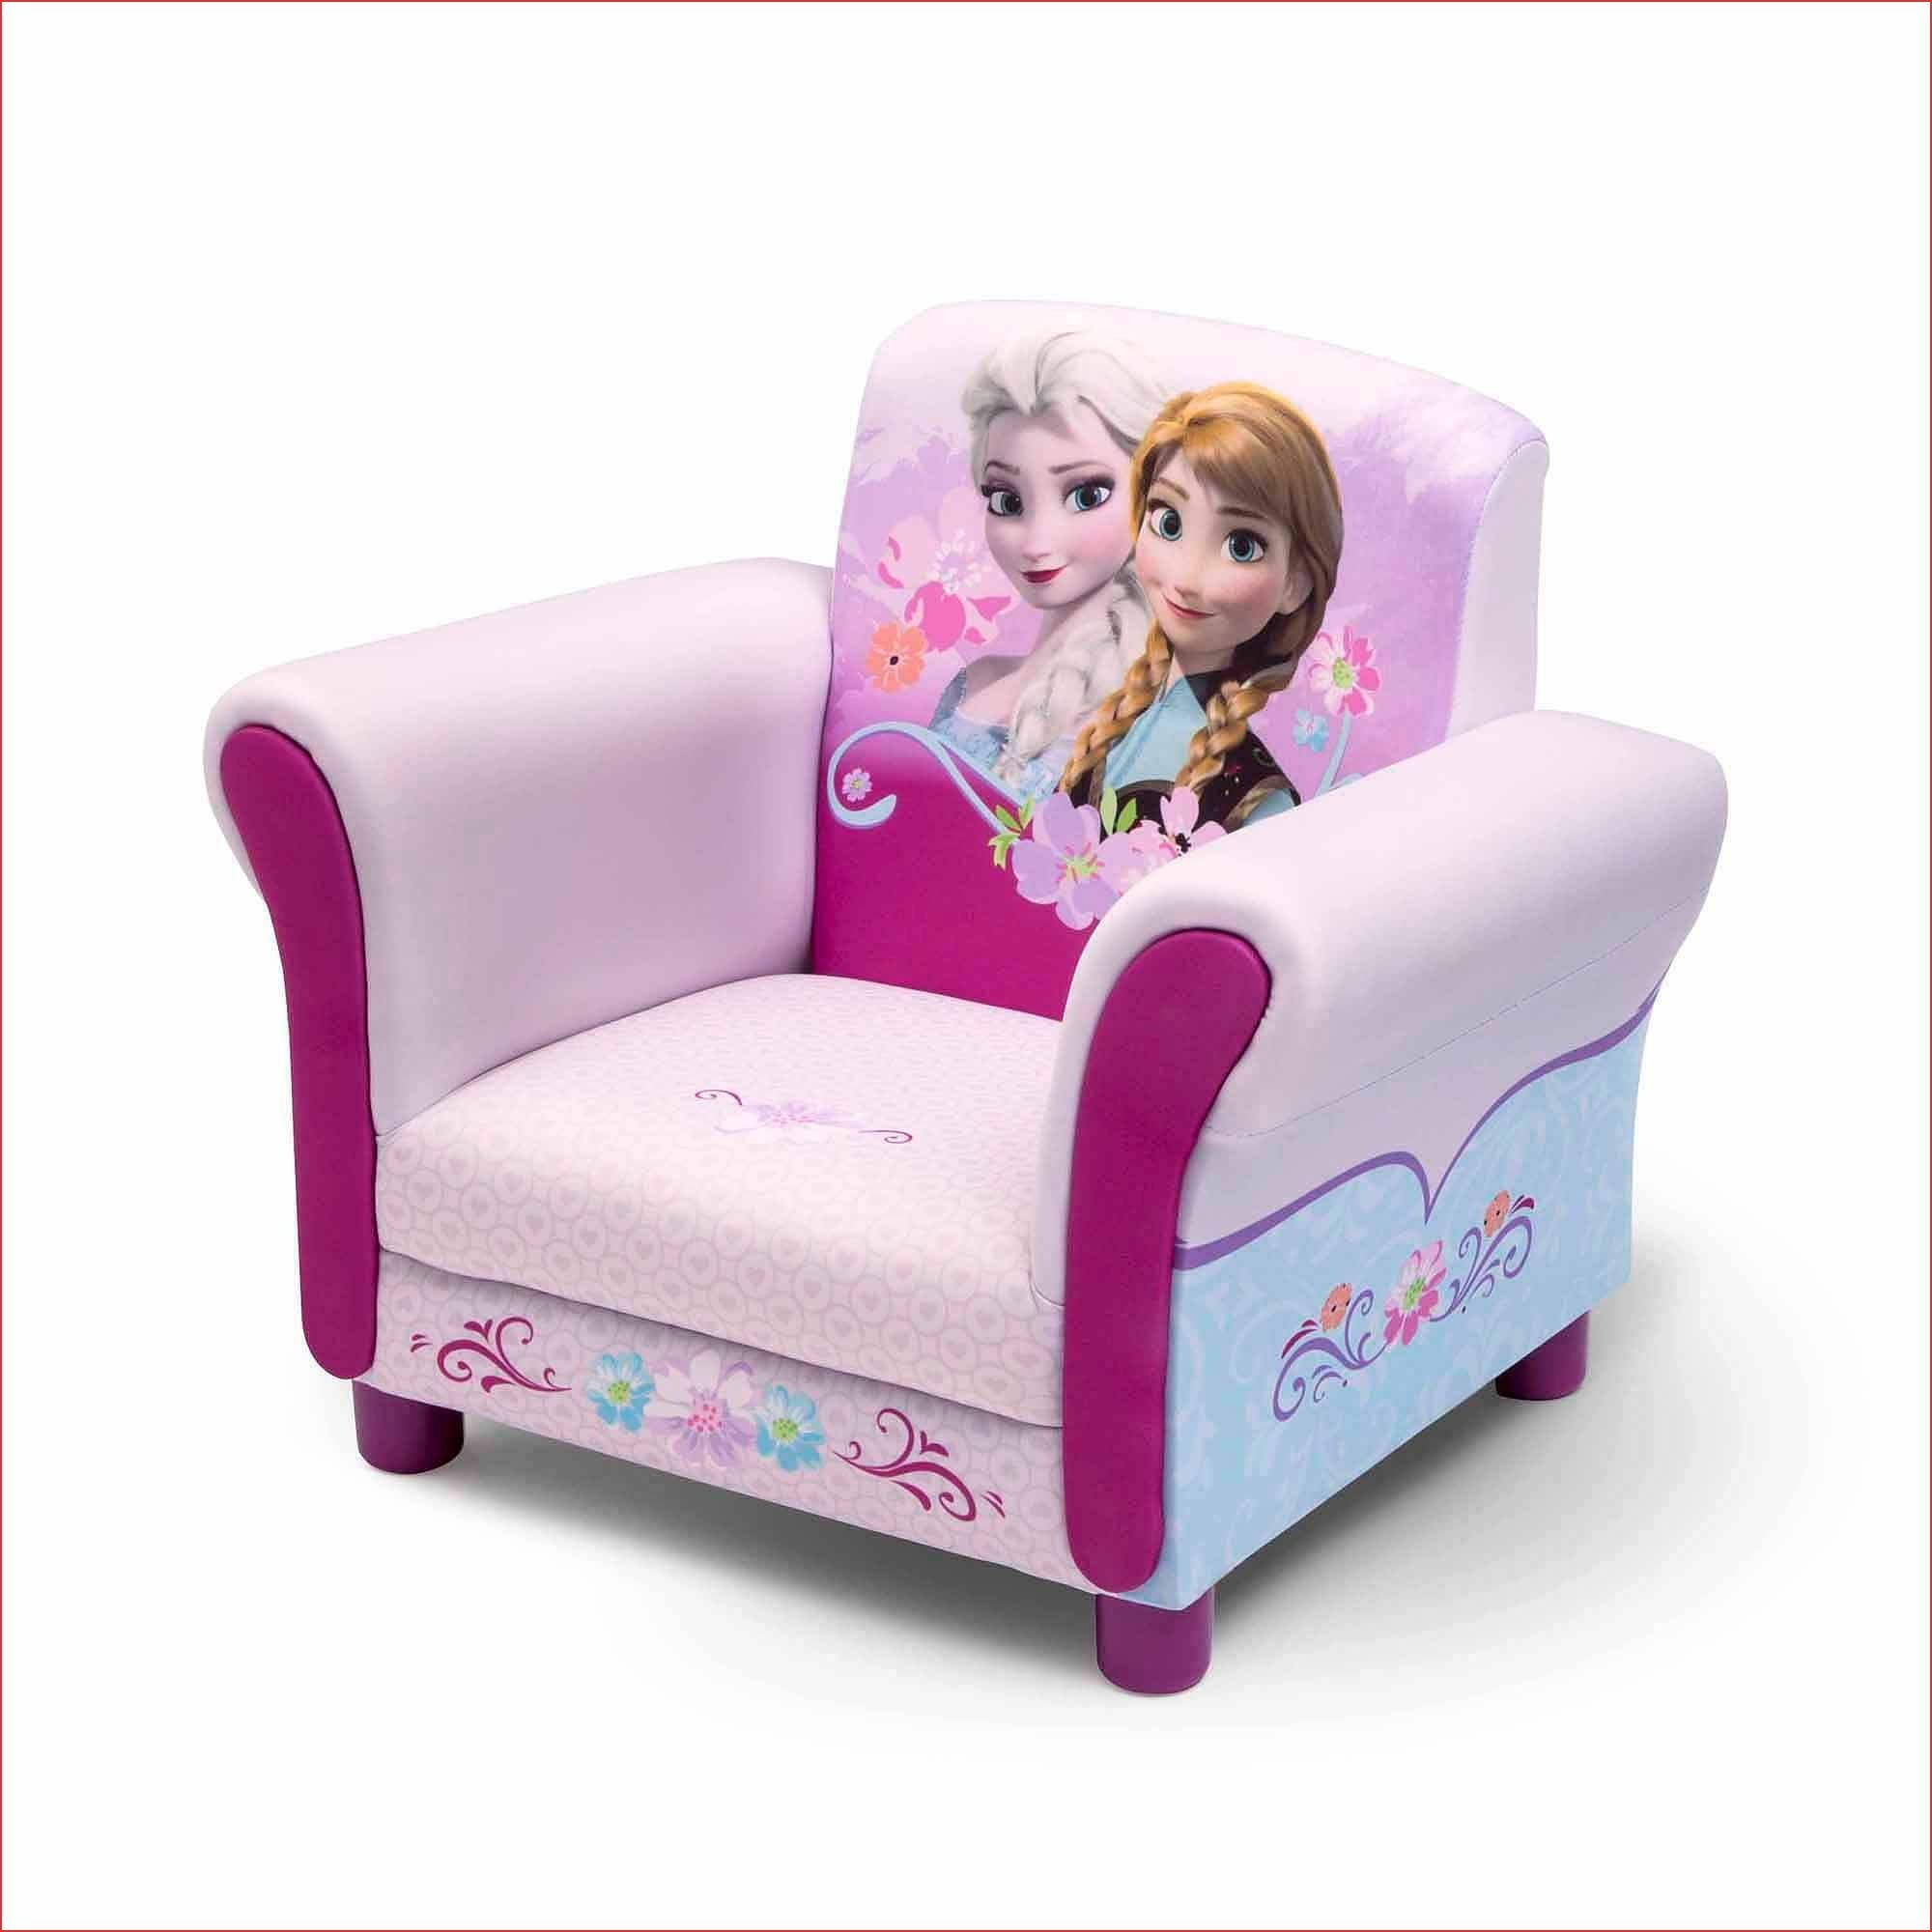 Personalized Kids Chairs & Sofas New Toddler Sofa Chair Chair Kids with regard to Personalized Kids Chairs and Sofas (Image 12 of 15)